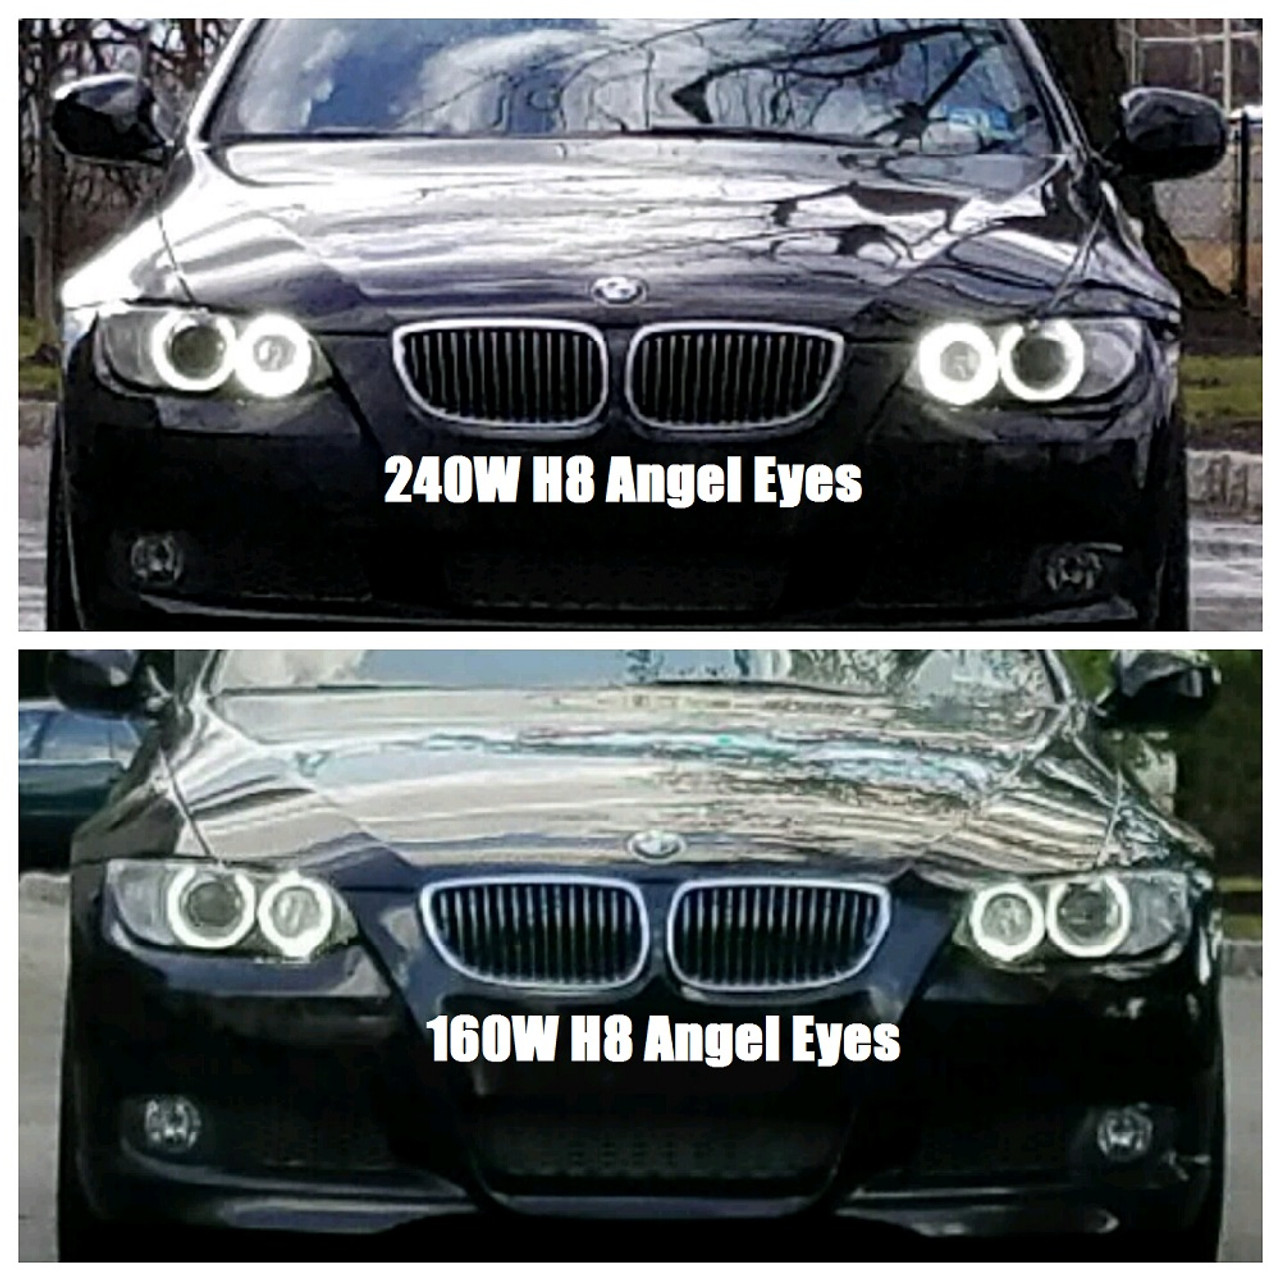 Replacement OEM LED Angel Eyes Module for BMW F20 1 Series 2011-2014